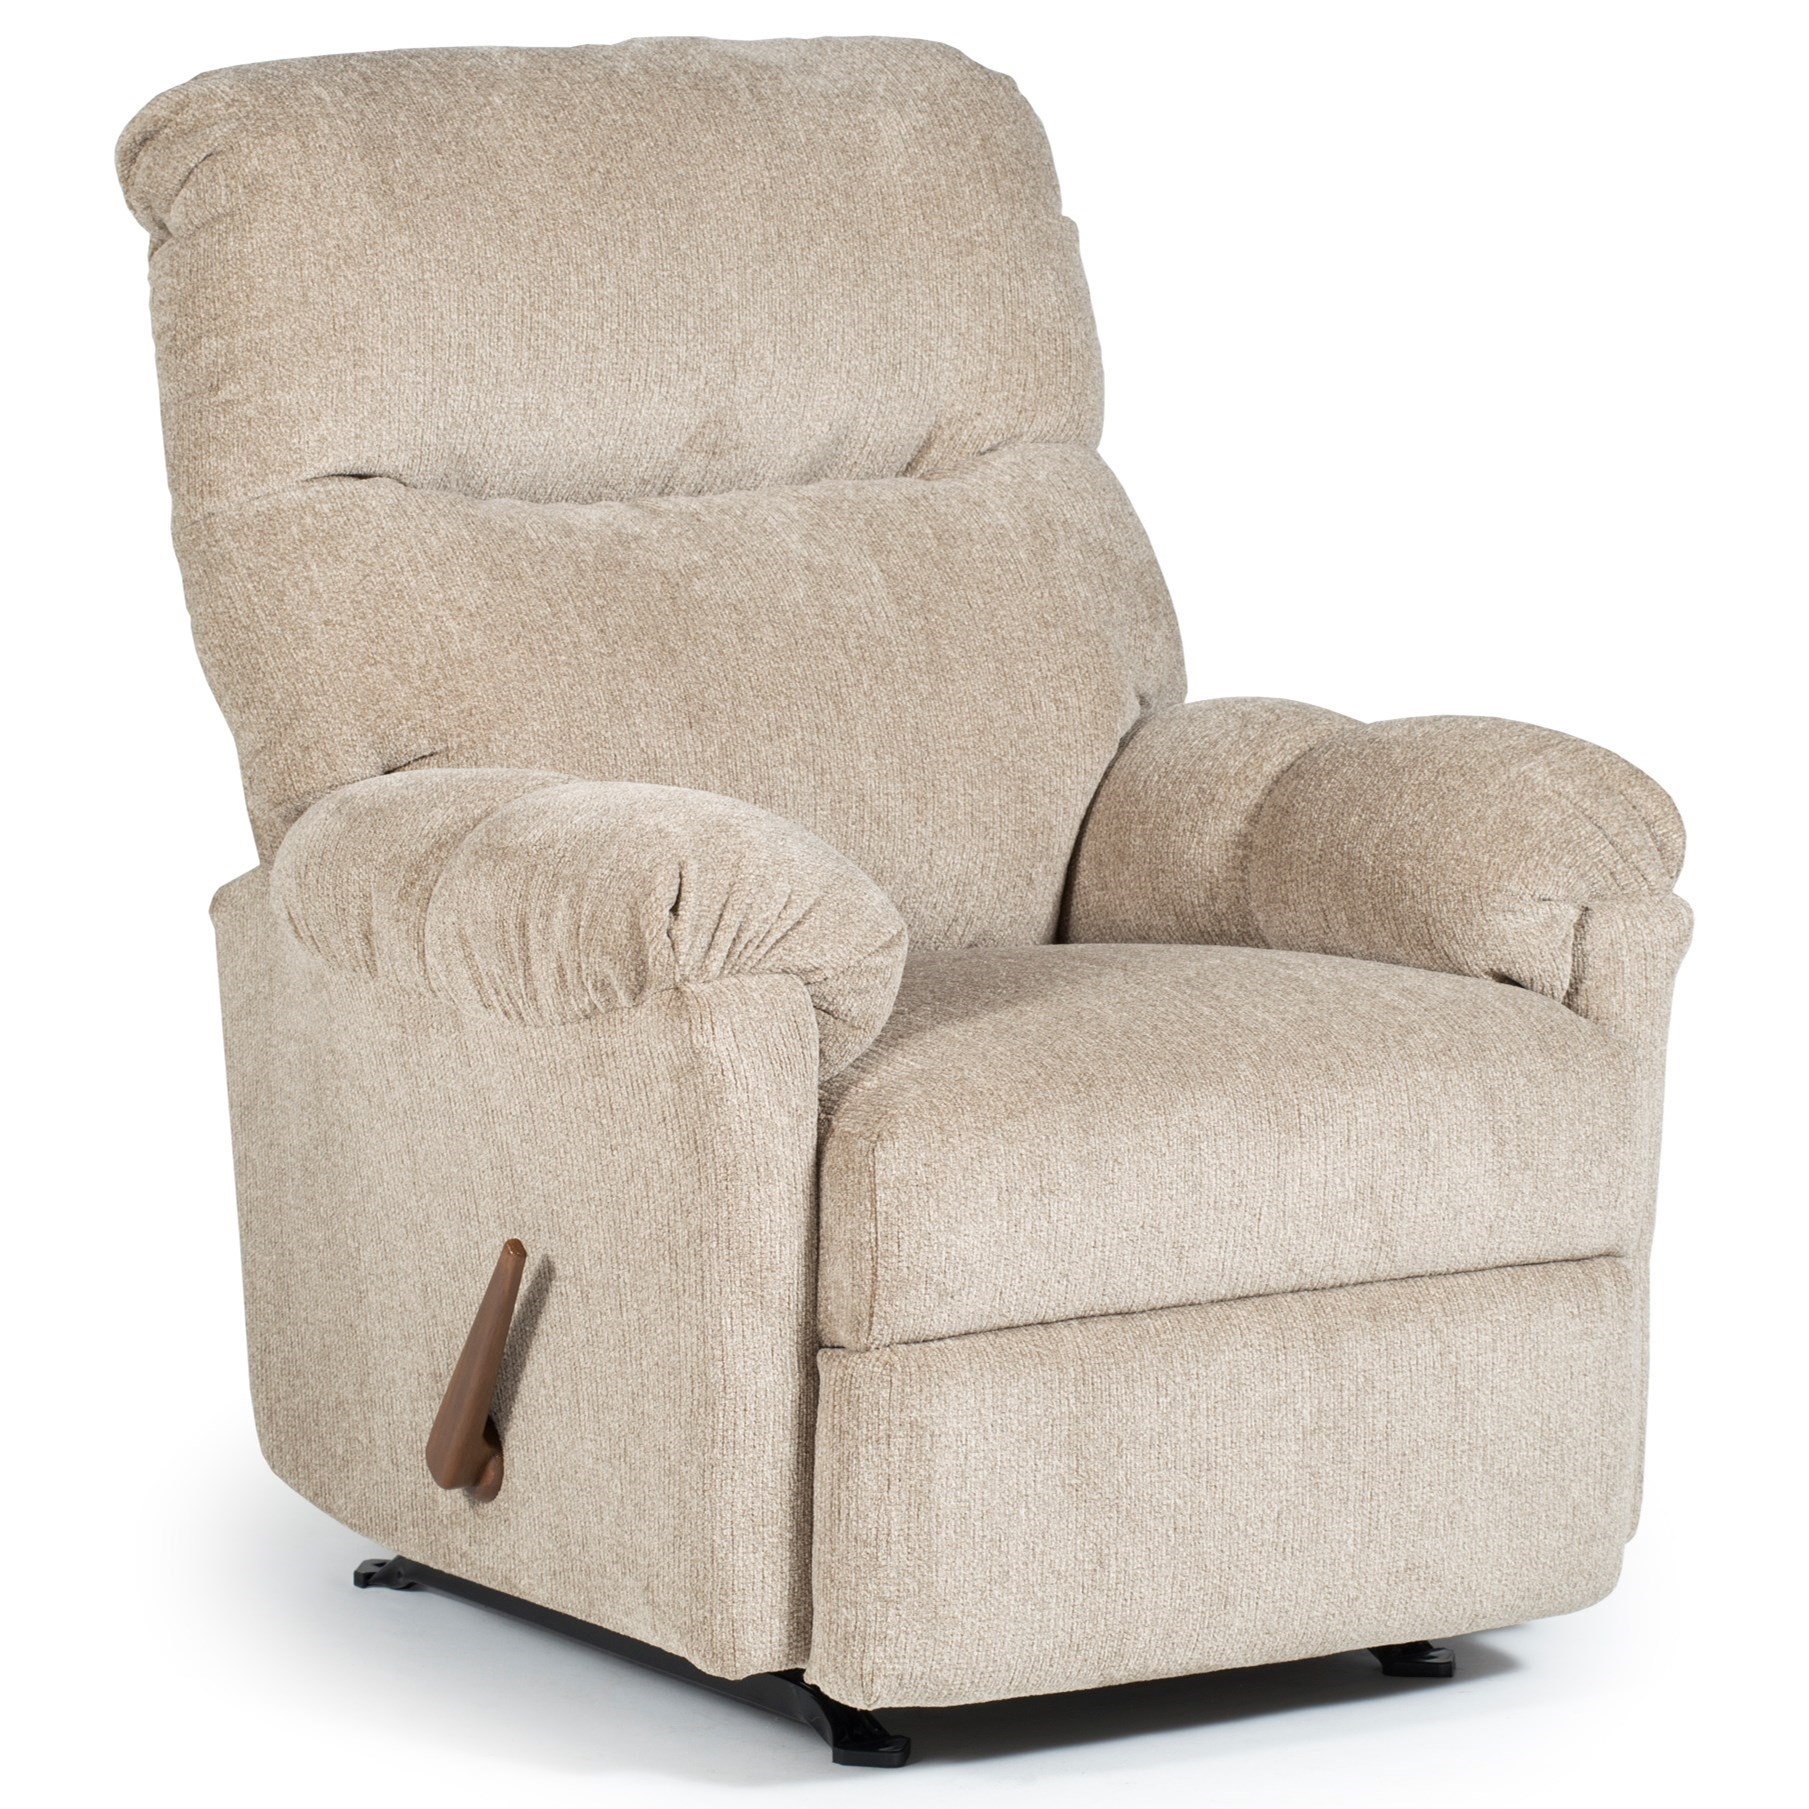 Reclining Rocking Chair Best Home Furnishings Medium Recliners 2nw67 Balmore